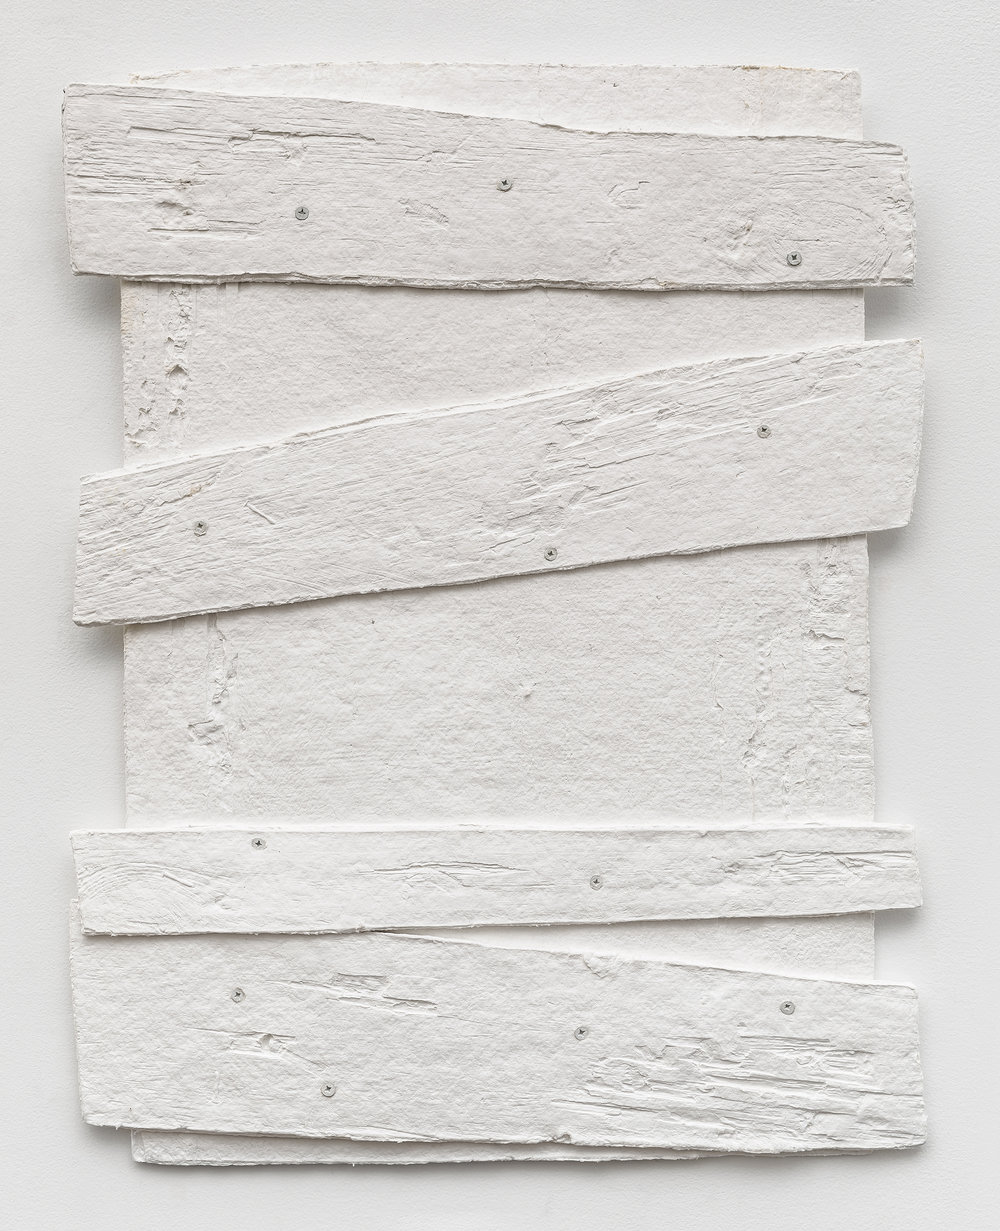 Diana Shpungin   Don't Let The Light In 2 (White) , 2018  Casting cotton paper pulp, linen paper   34 x 27 x 1 inches  Image copyright and courtesy of Etienne Frossard.